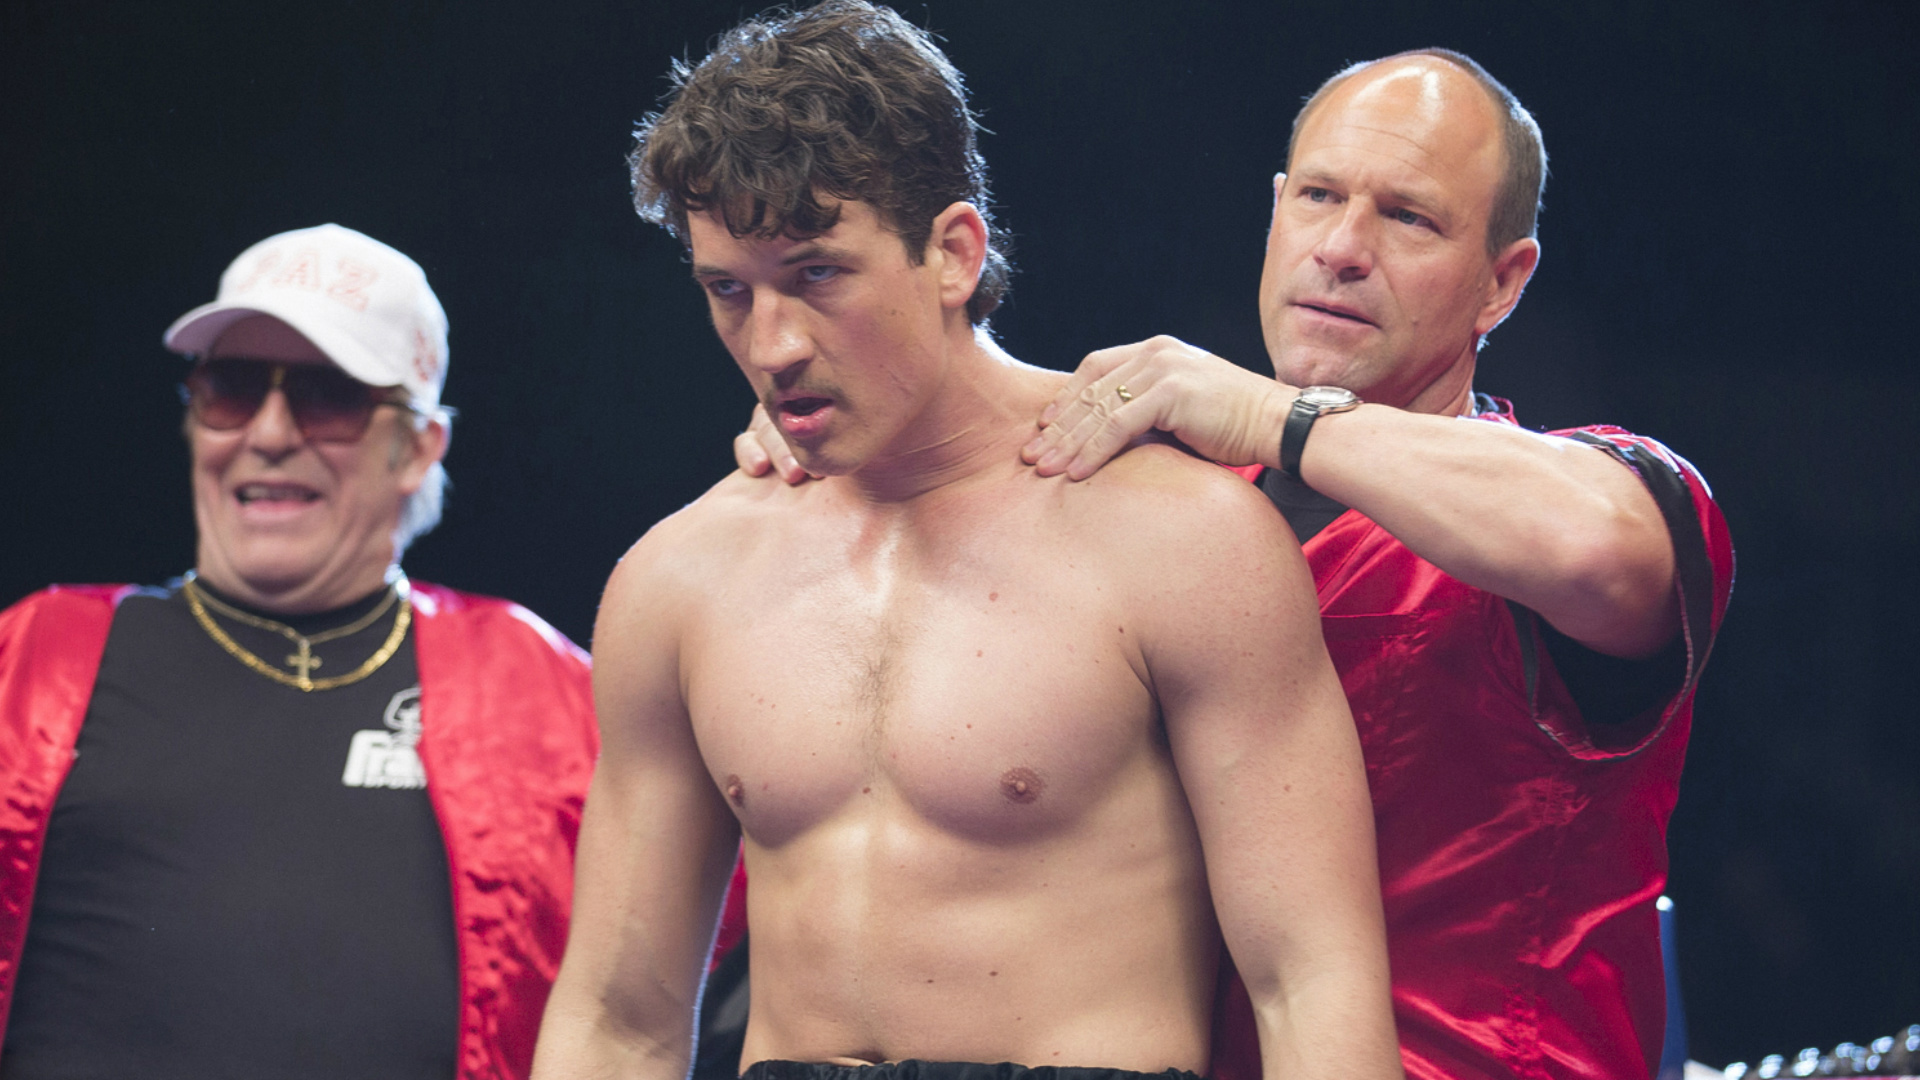 Bleed For This Miles Teller and Aaron Eckhart